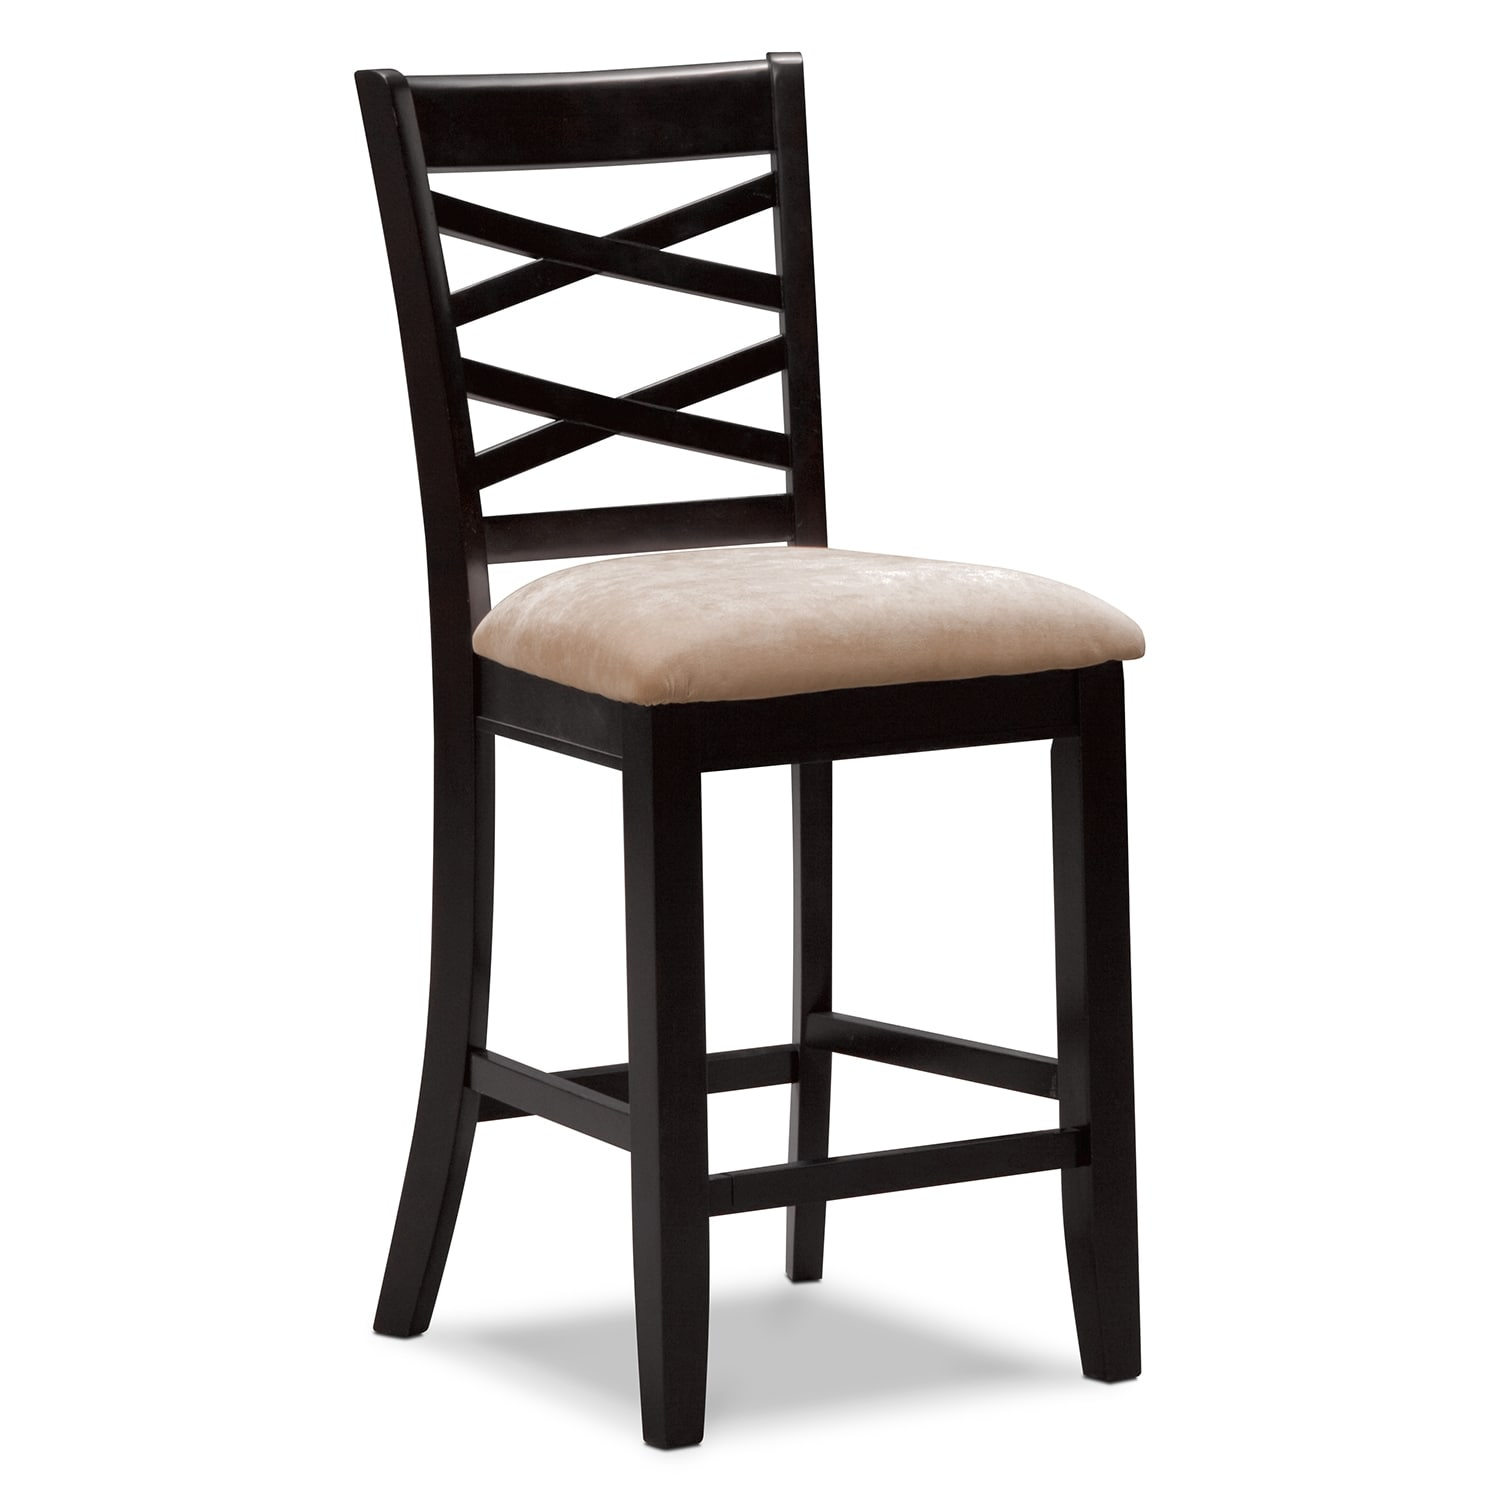 Counter Height Vs Bar Stool : Davis Counter-Height Stool - Espresso Furniture.com